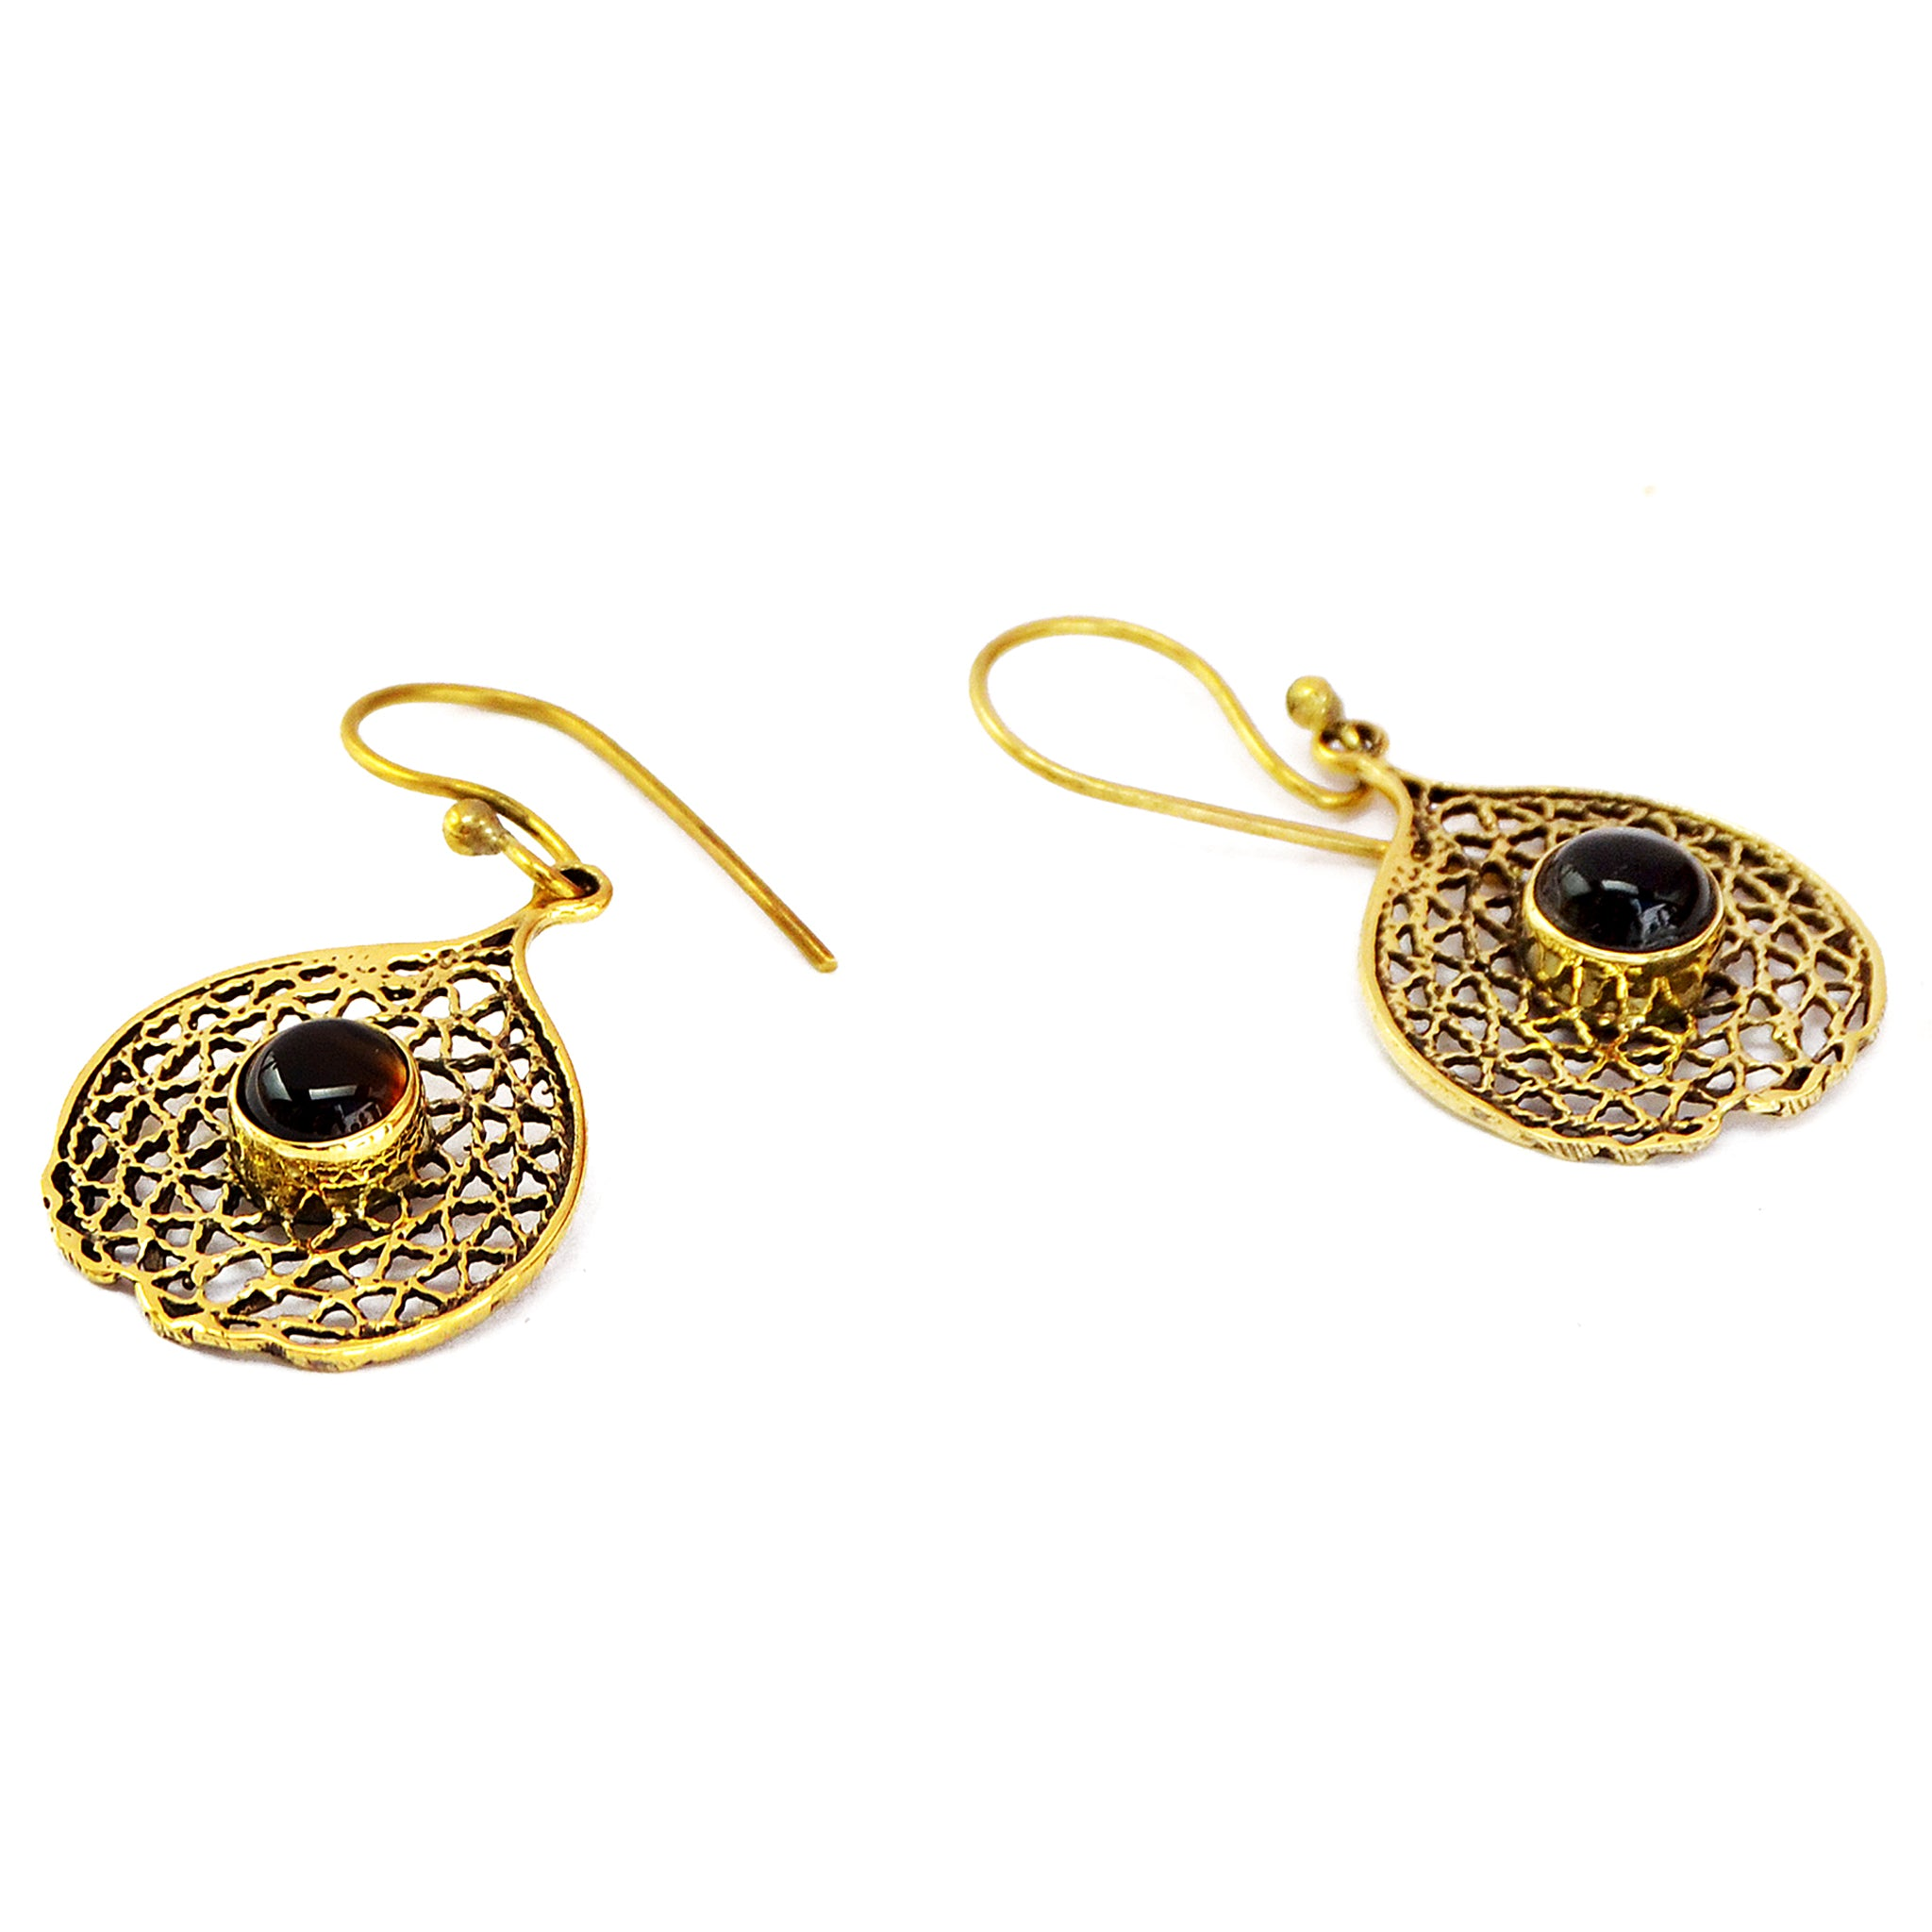 Filigree earrings gold